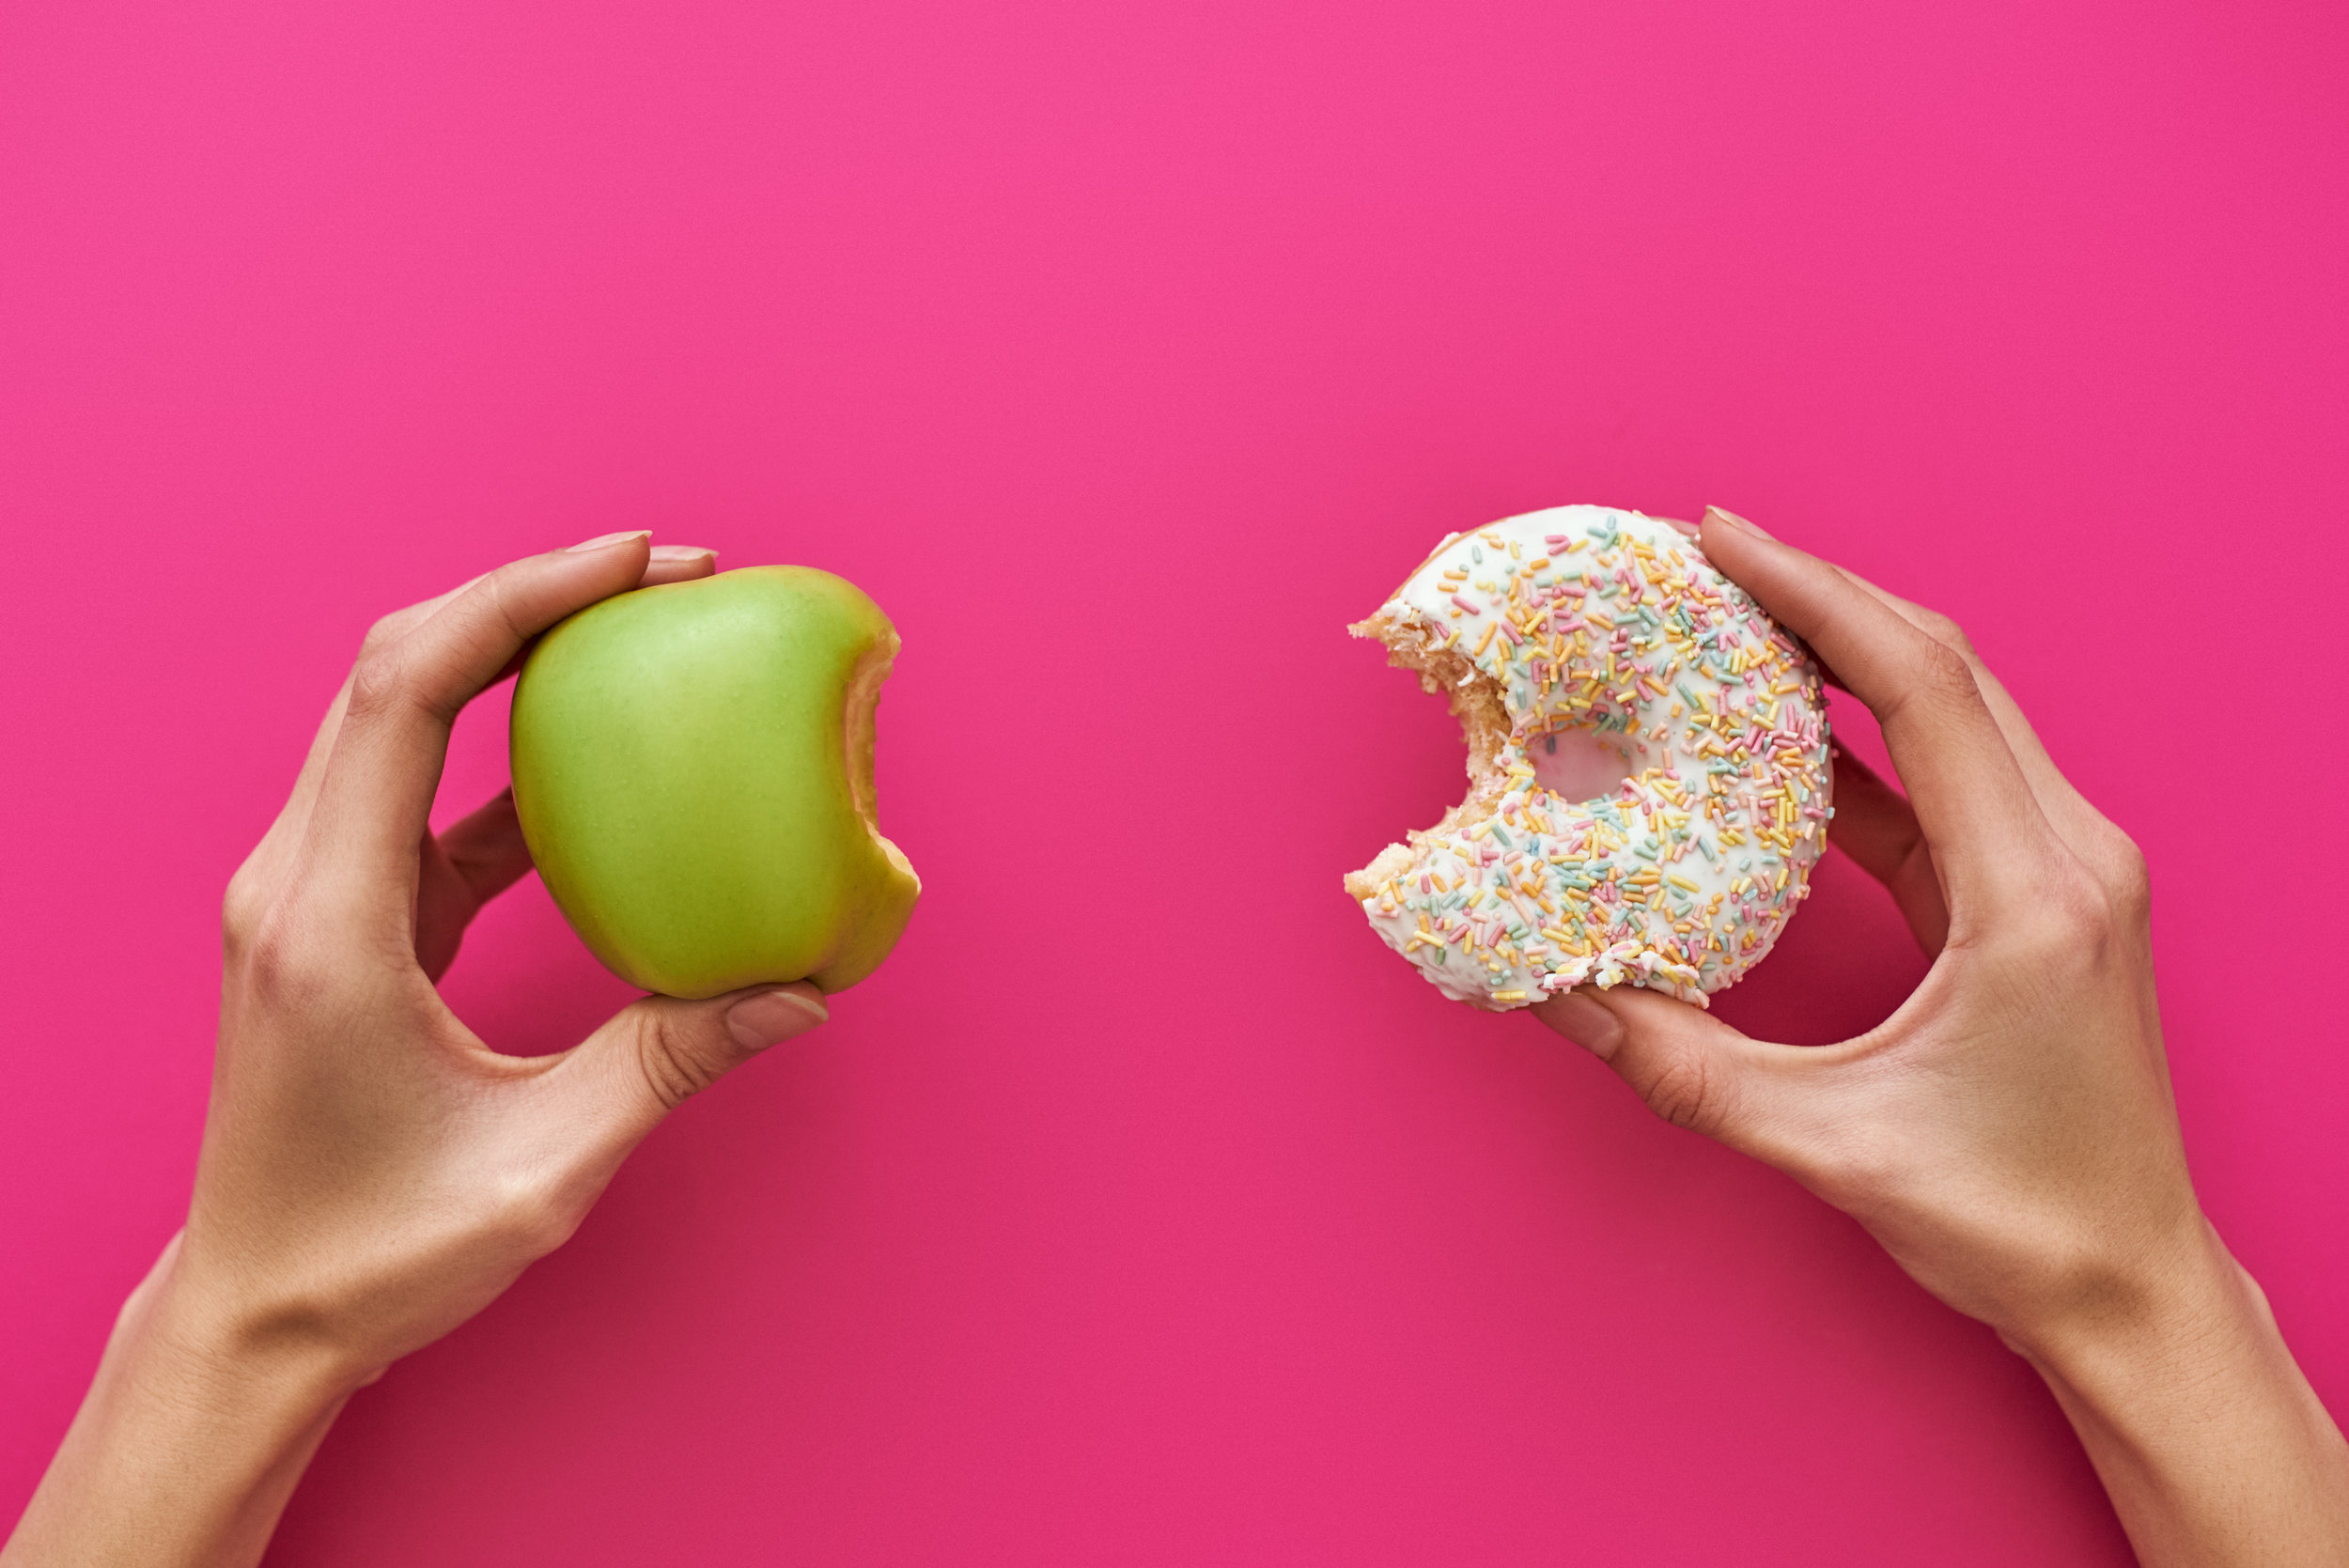 Dieting-or-good-health-concept.-Young-woman-trying-to-choose-between-apple-and-donut-1084344284_5904x3941.jpeg